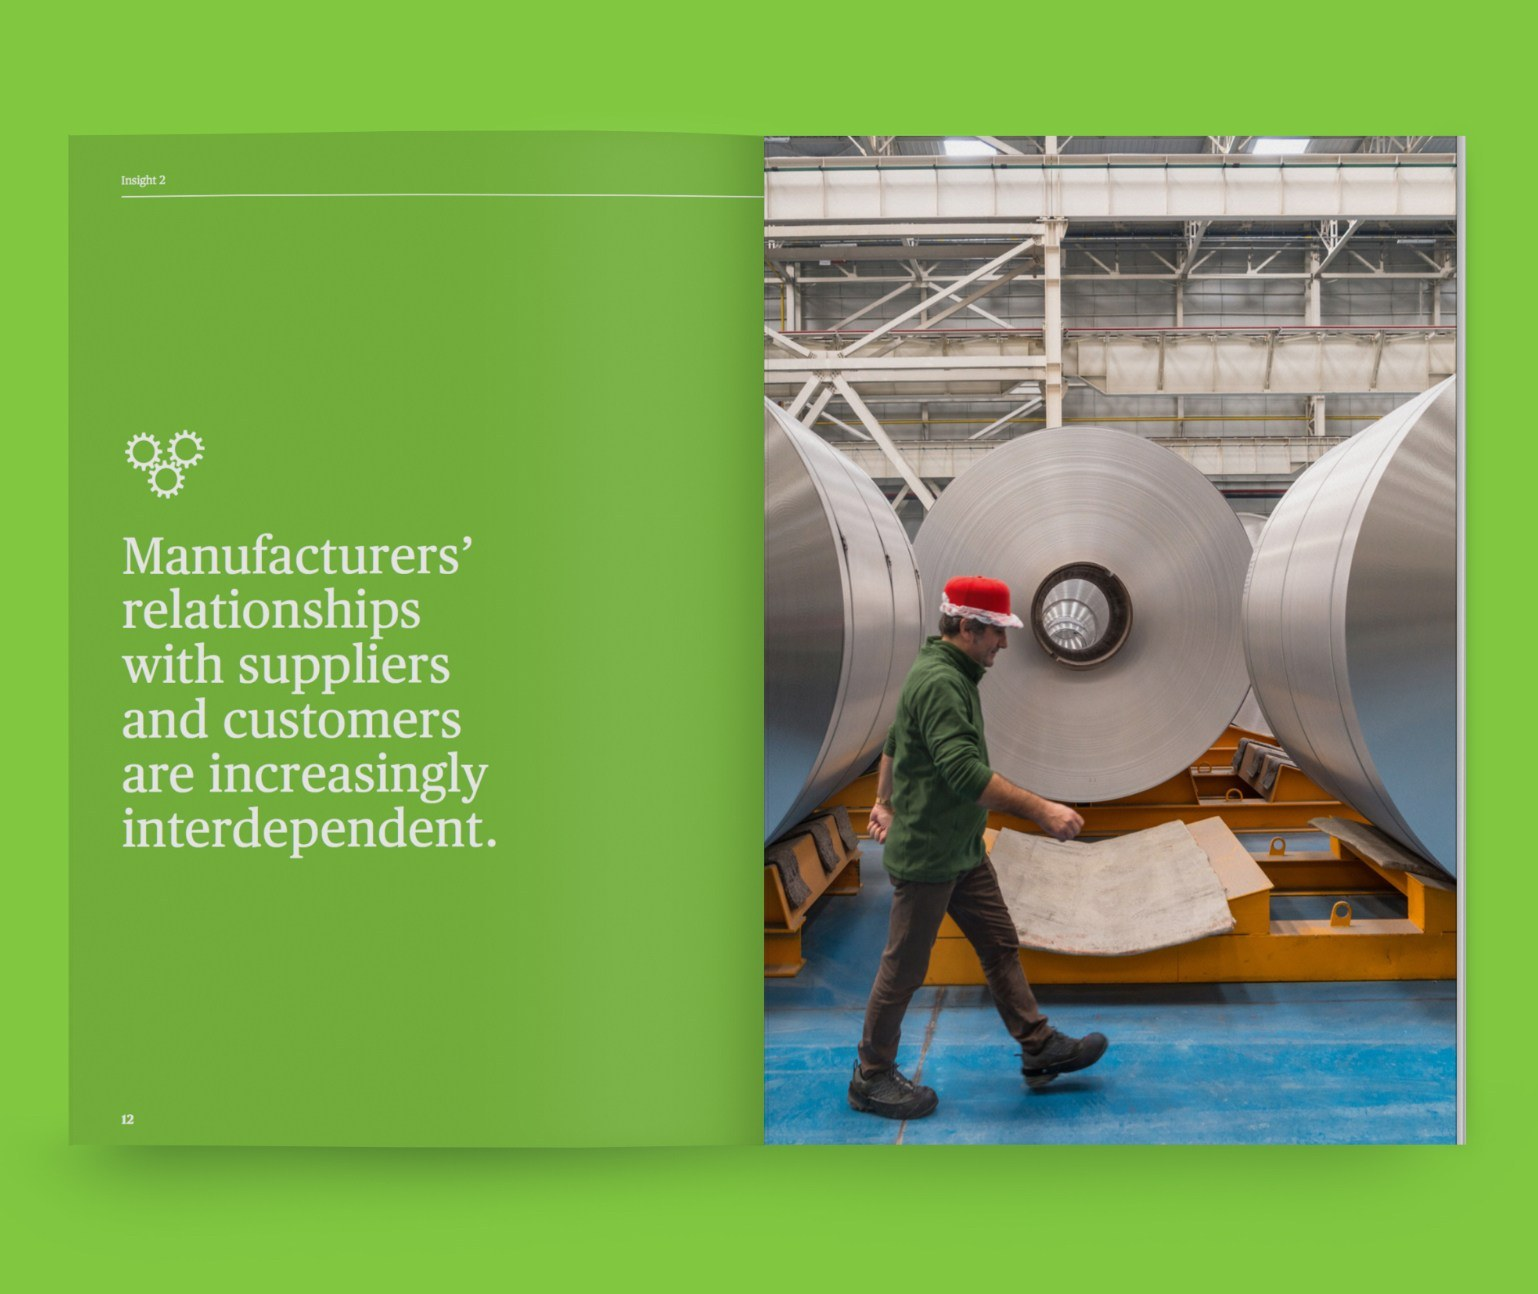 Interior spread of a brochure, with large type and image of manufacturing